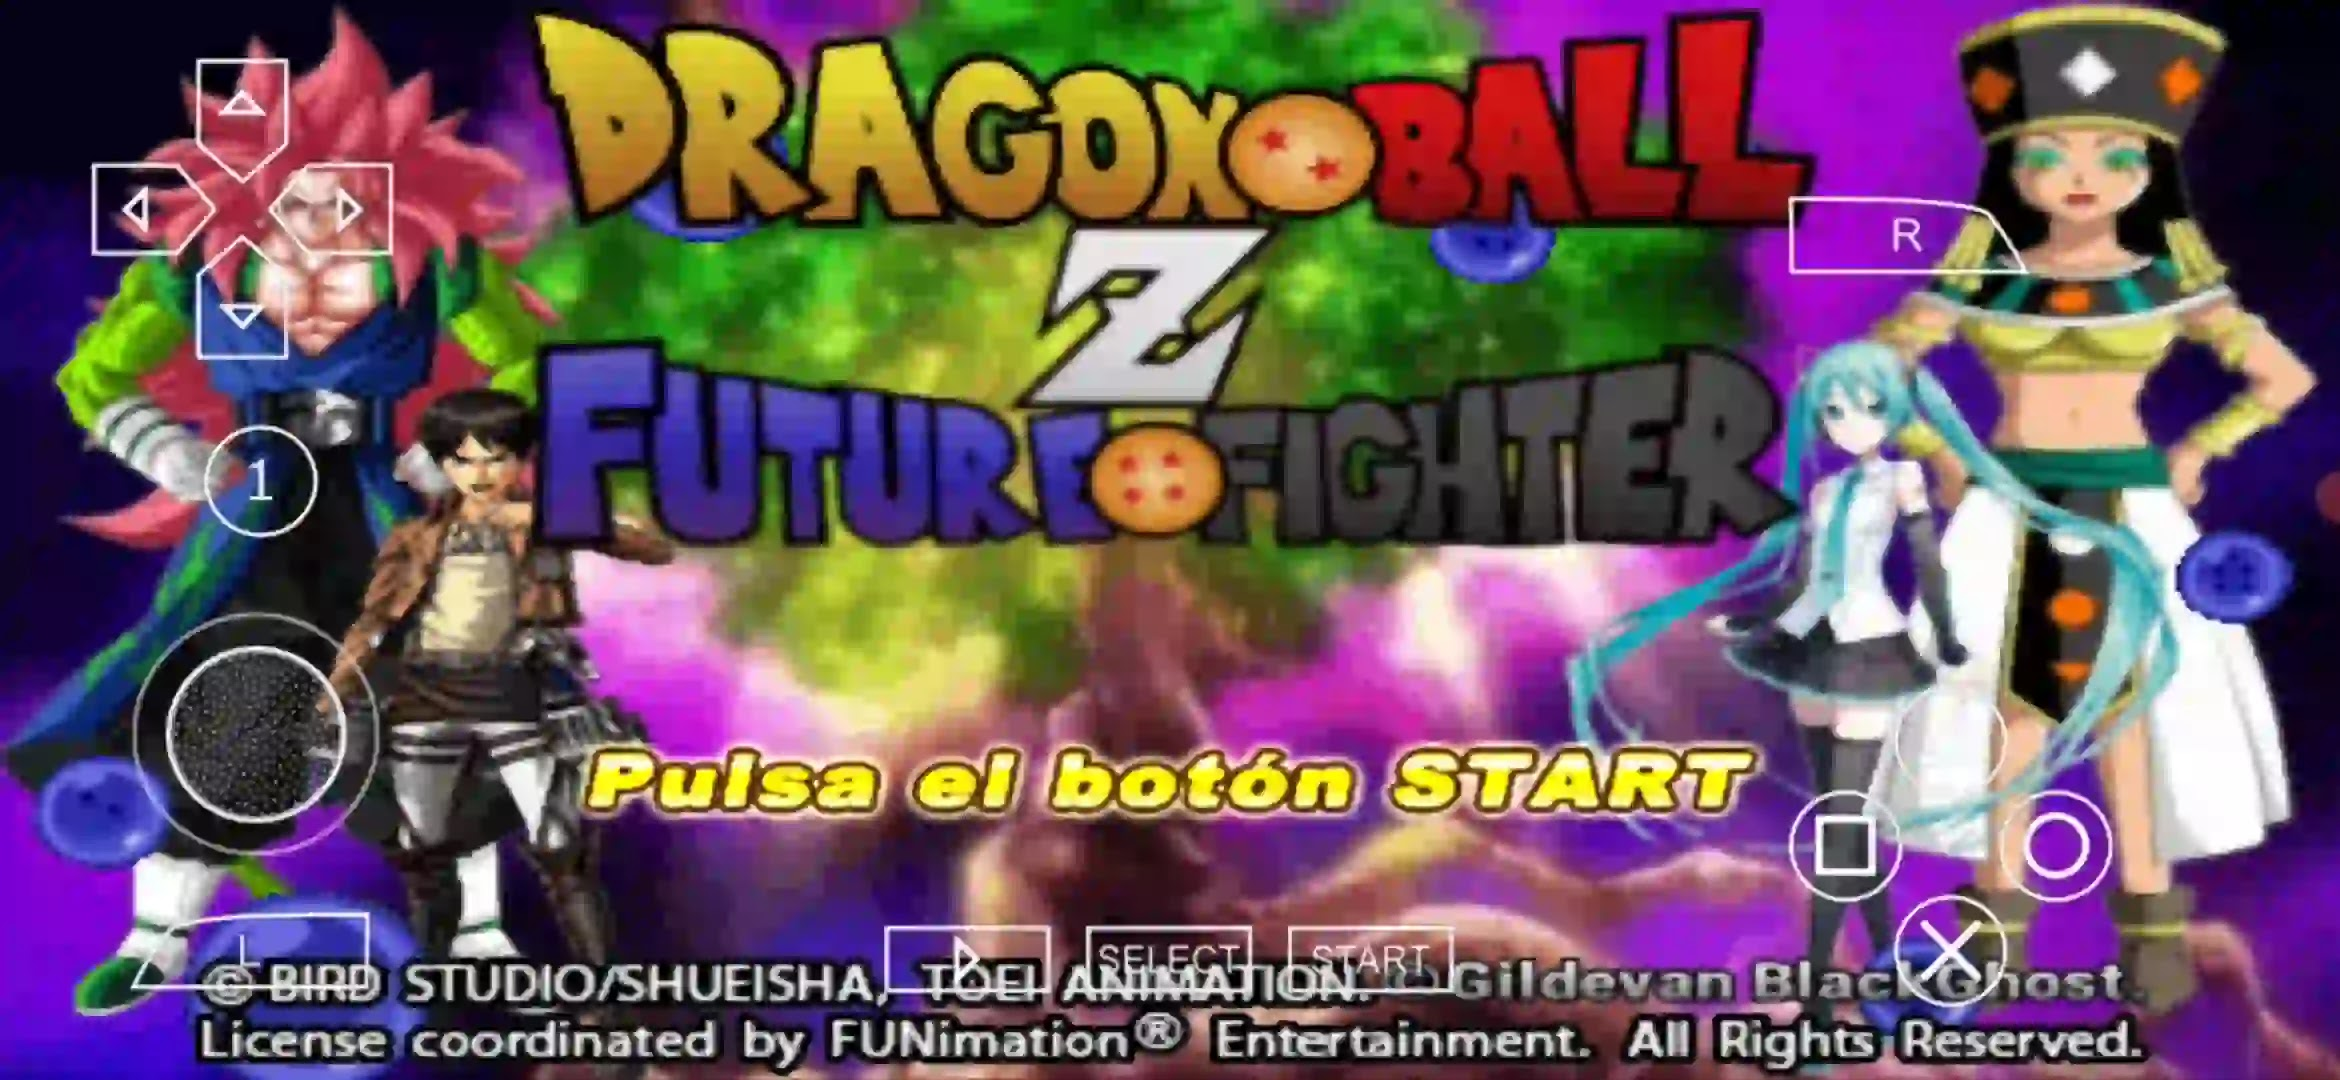 PSP Dragon Ball Z game for android